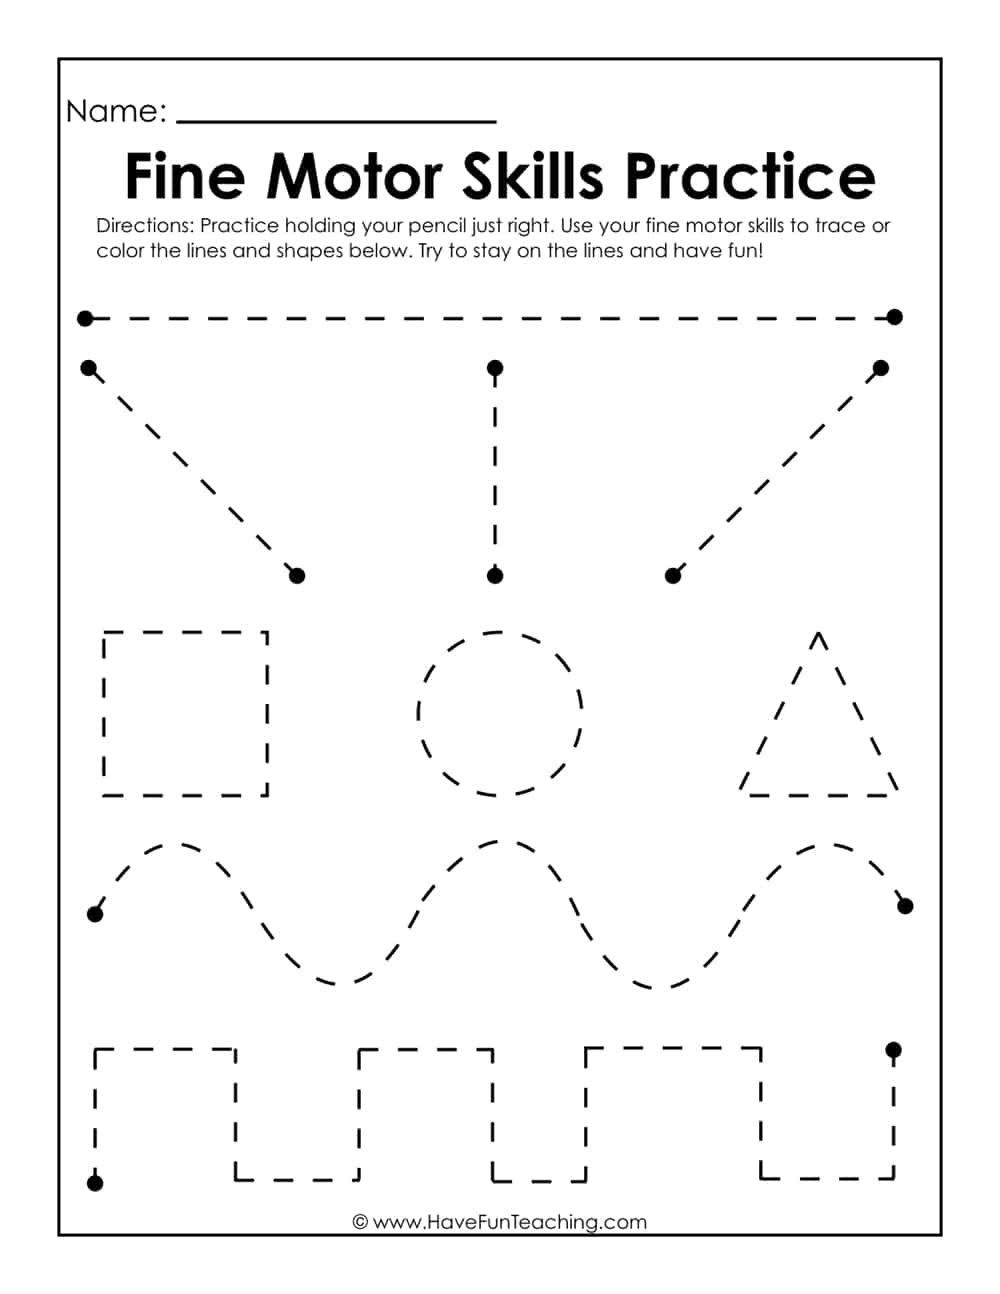 fine motor skills practice worksheet have fun teaching. Black Bedroom Furniture Sets. Home Design Ideas